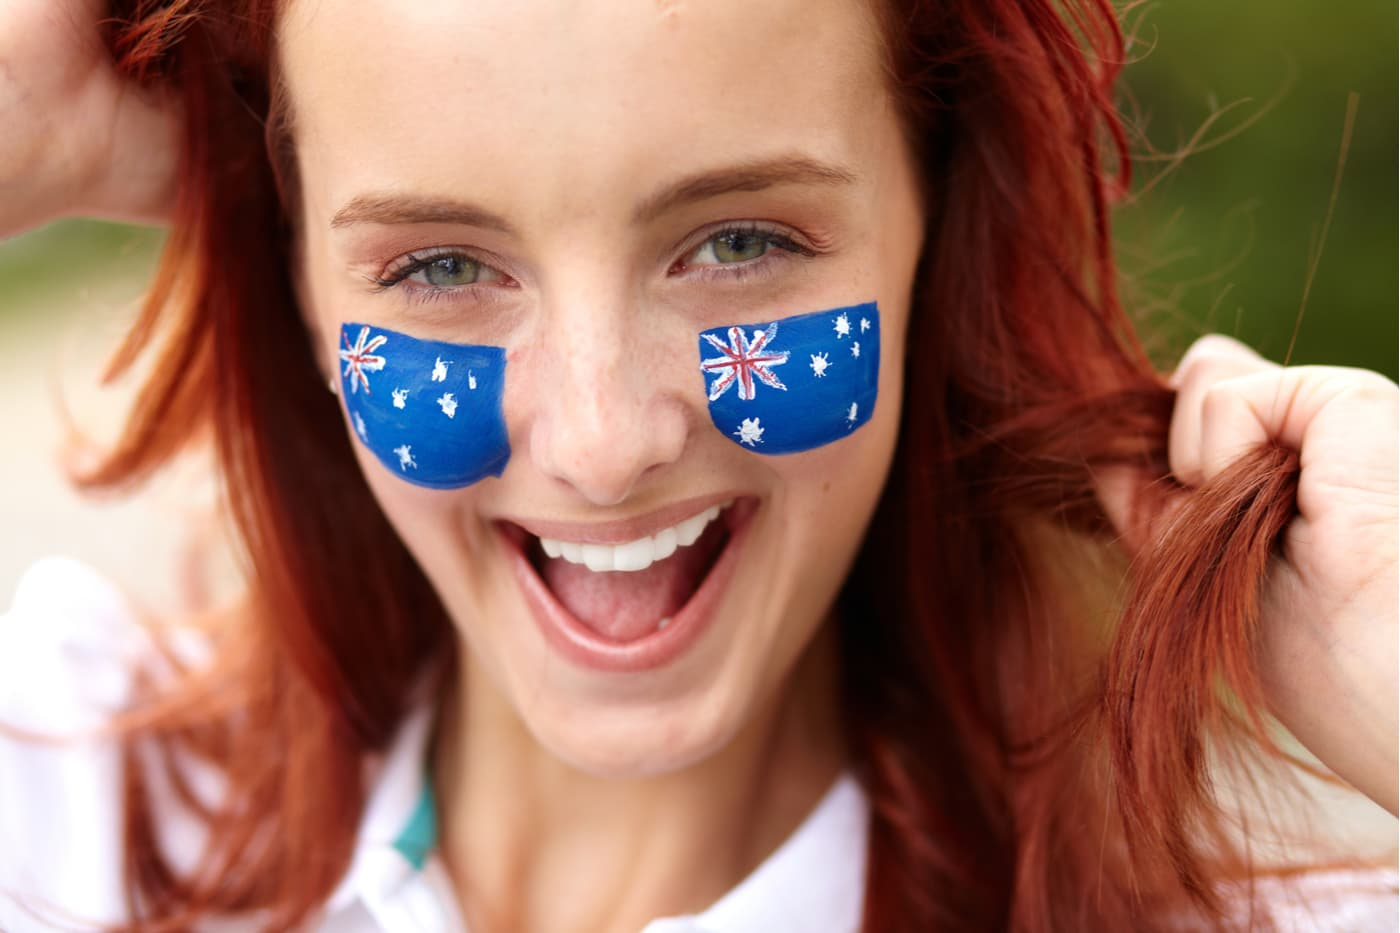 Redhead with face paint of Australian flags